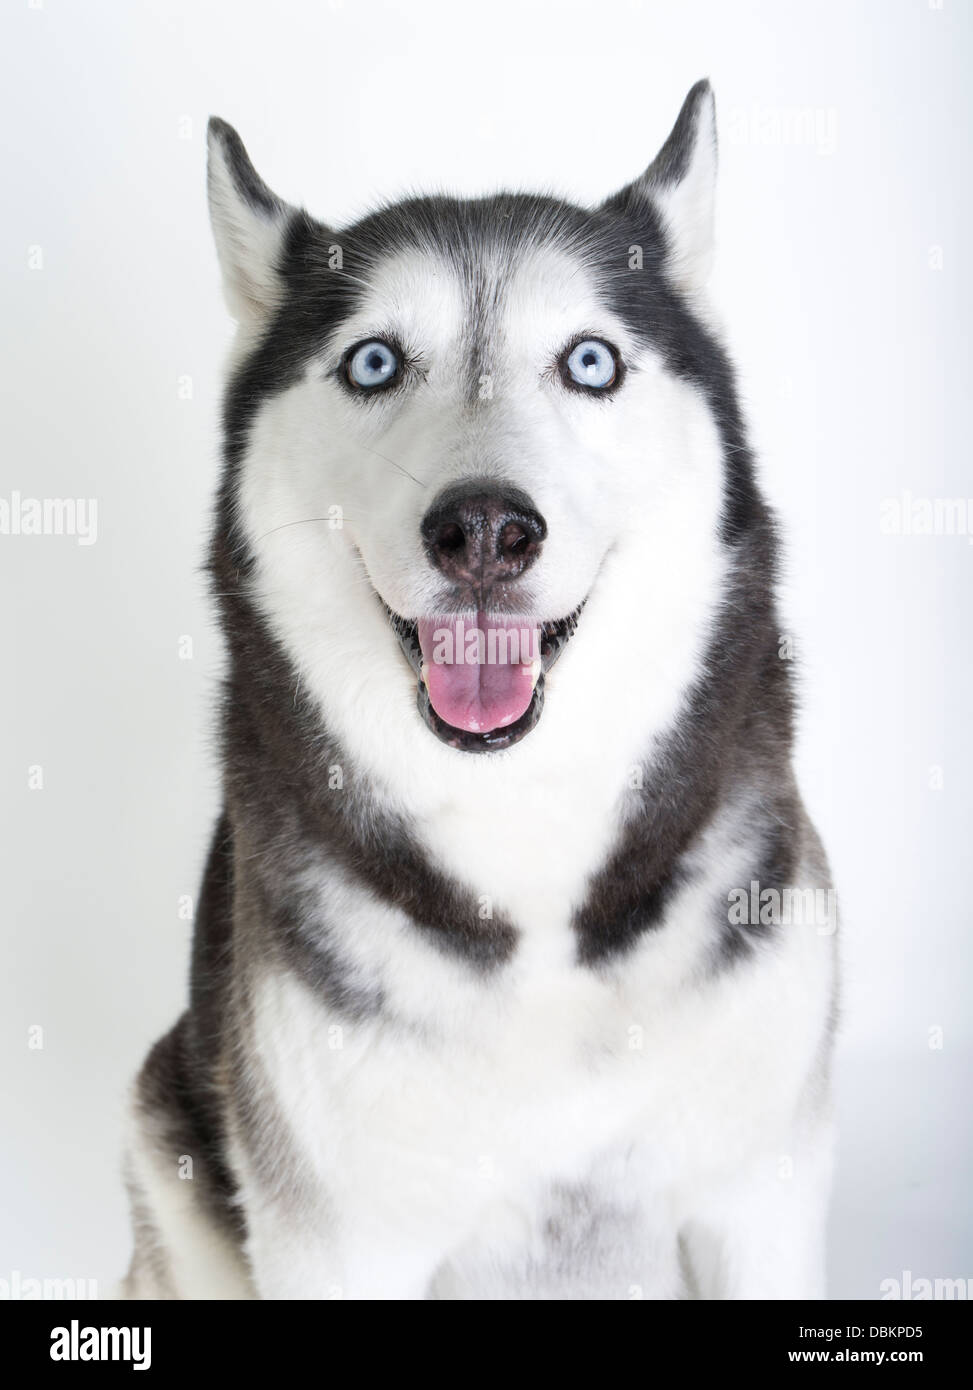 siberian husky with blue eyes on white snow background